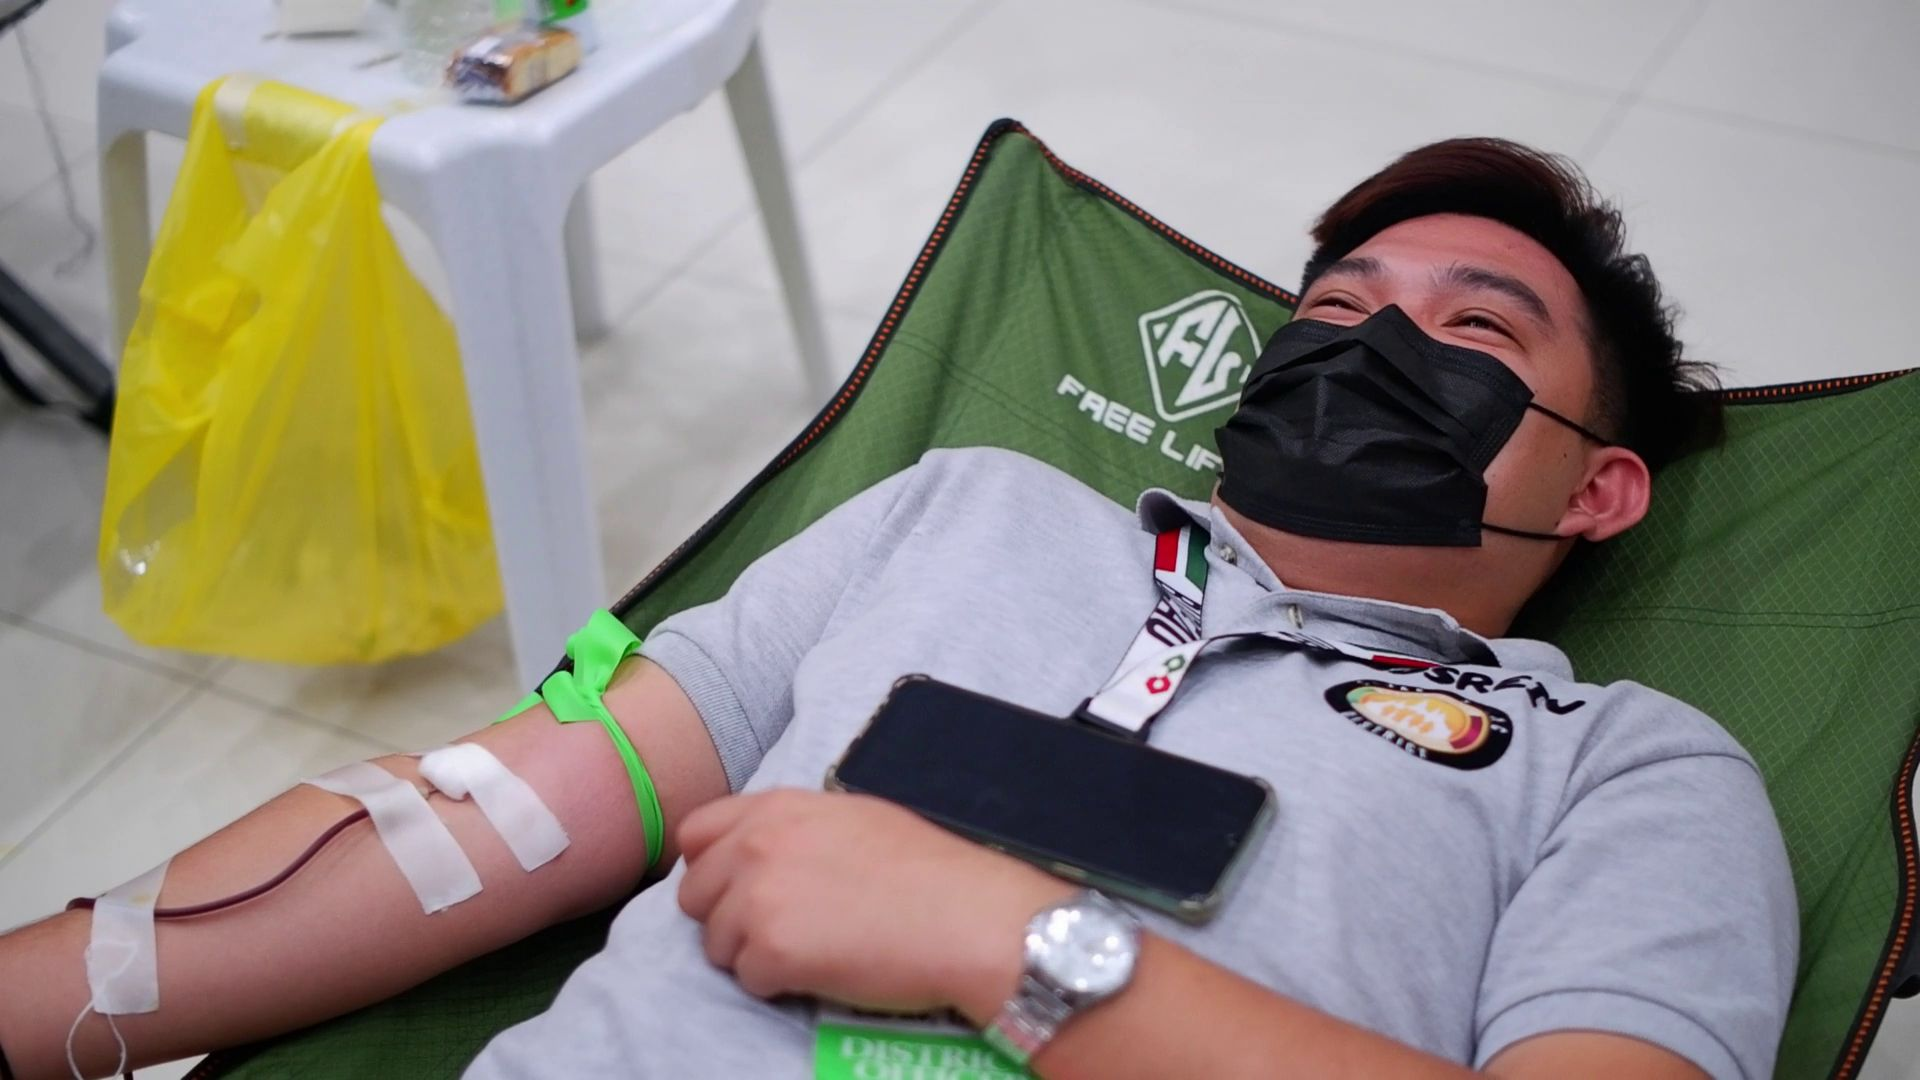 Ecclesiastical District of Capas, Tarlac conducts blood donation